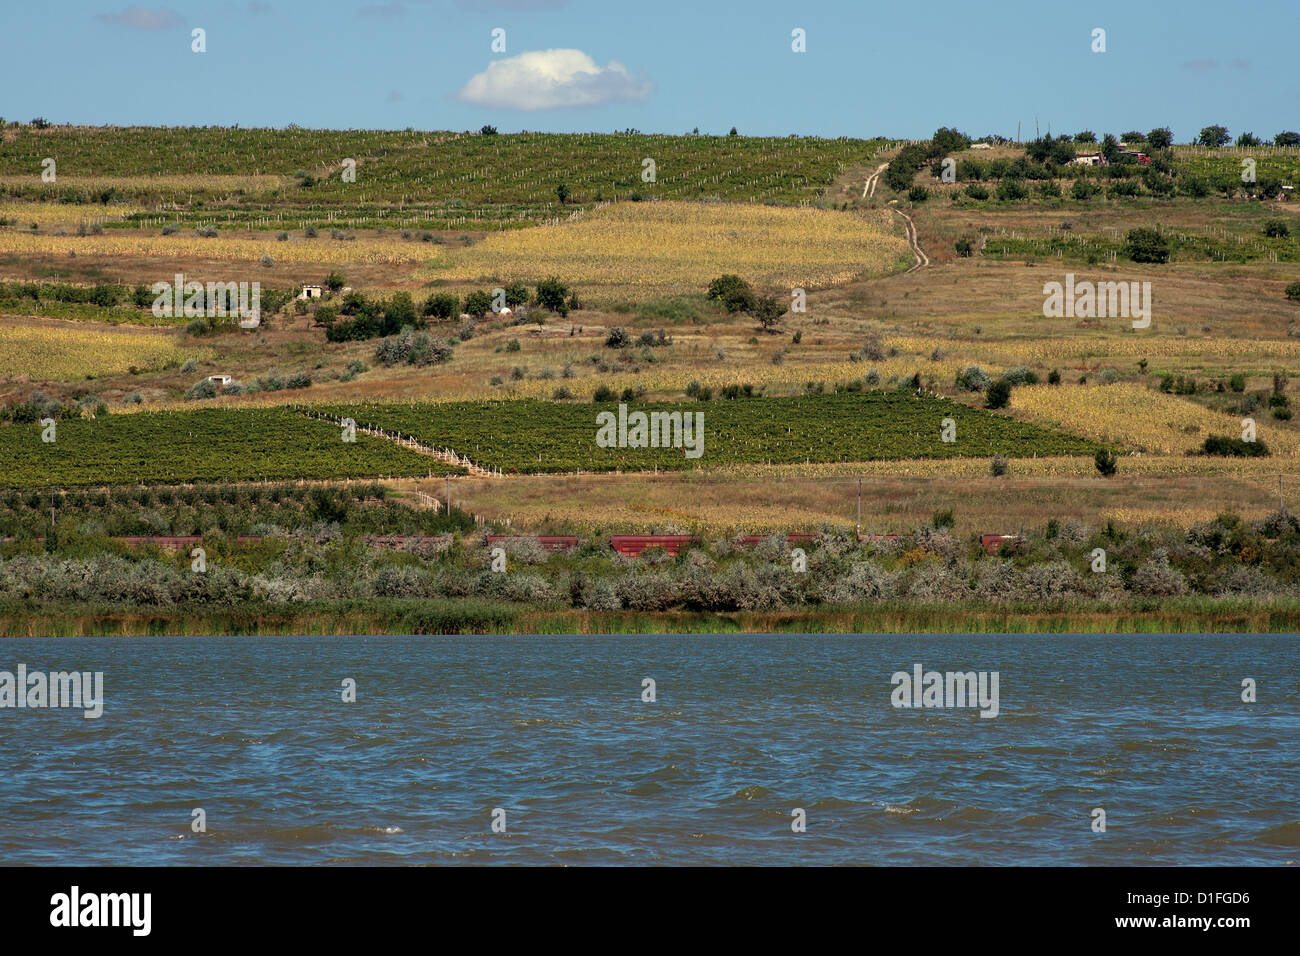 Moldova landscape with grapes on the hill, freight train and lake - Stock Image